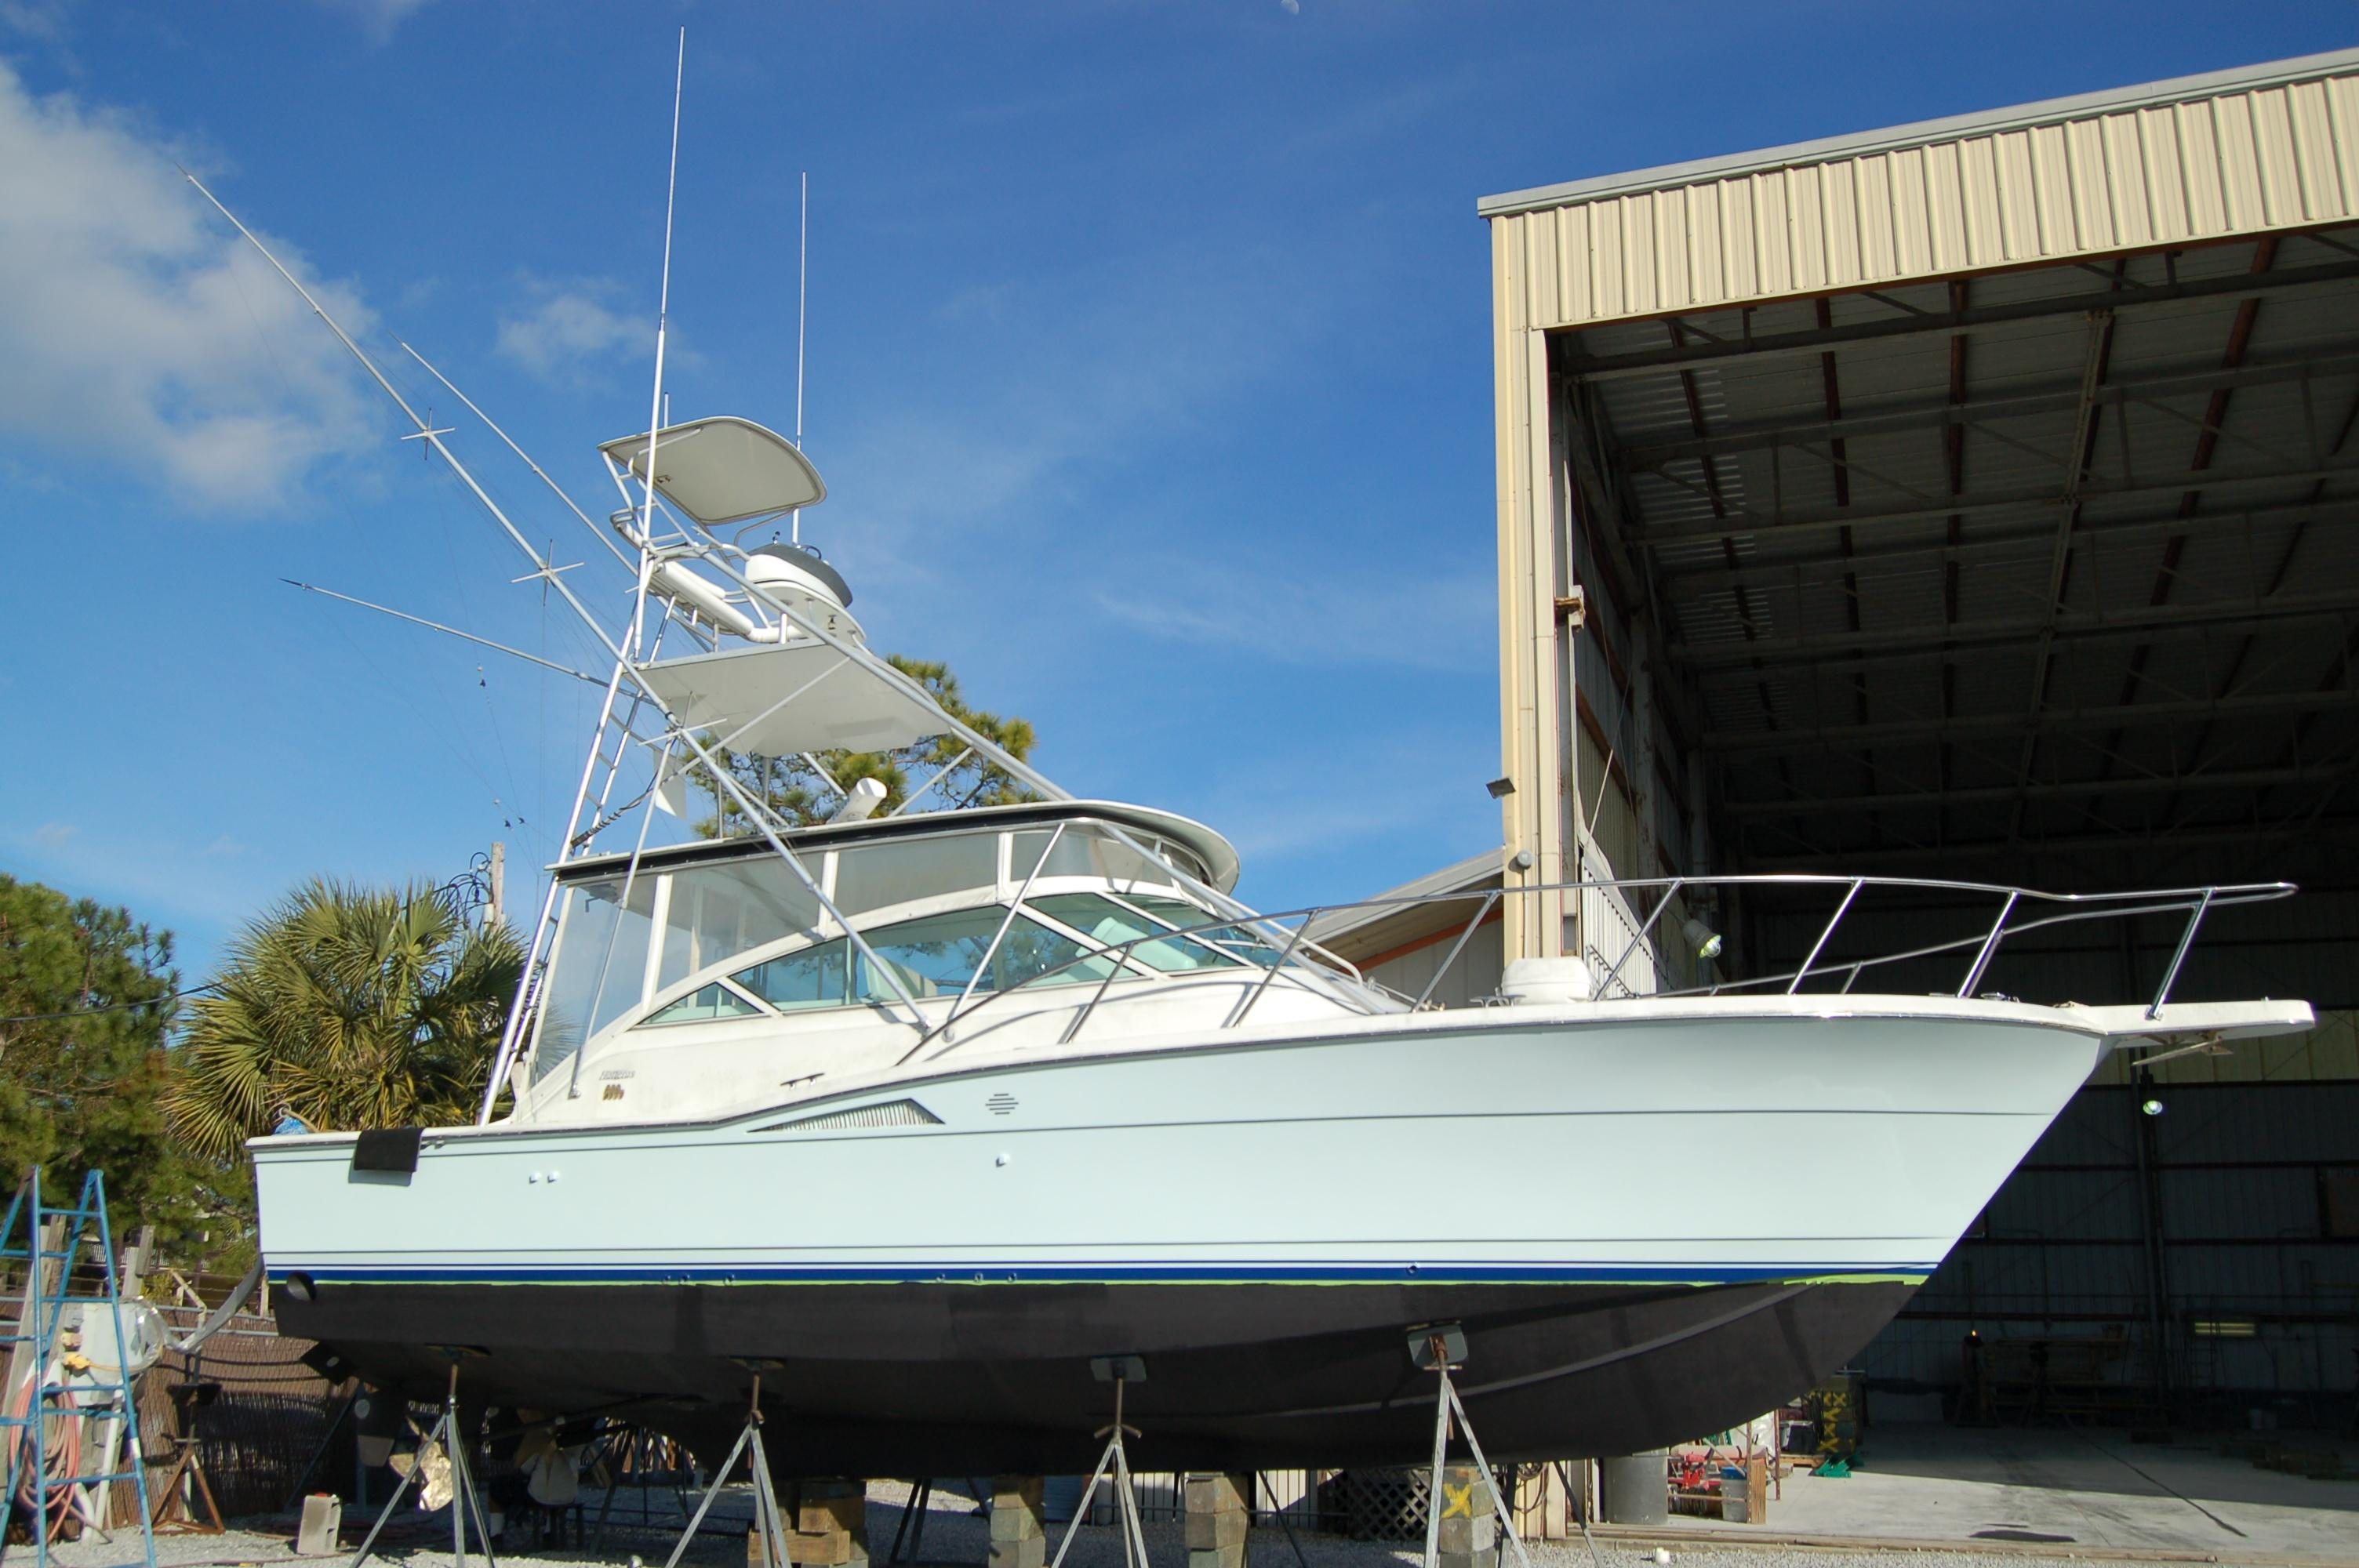 1995 Hatteras Express Power Boat For Sale Www Yachtworld Com